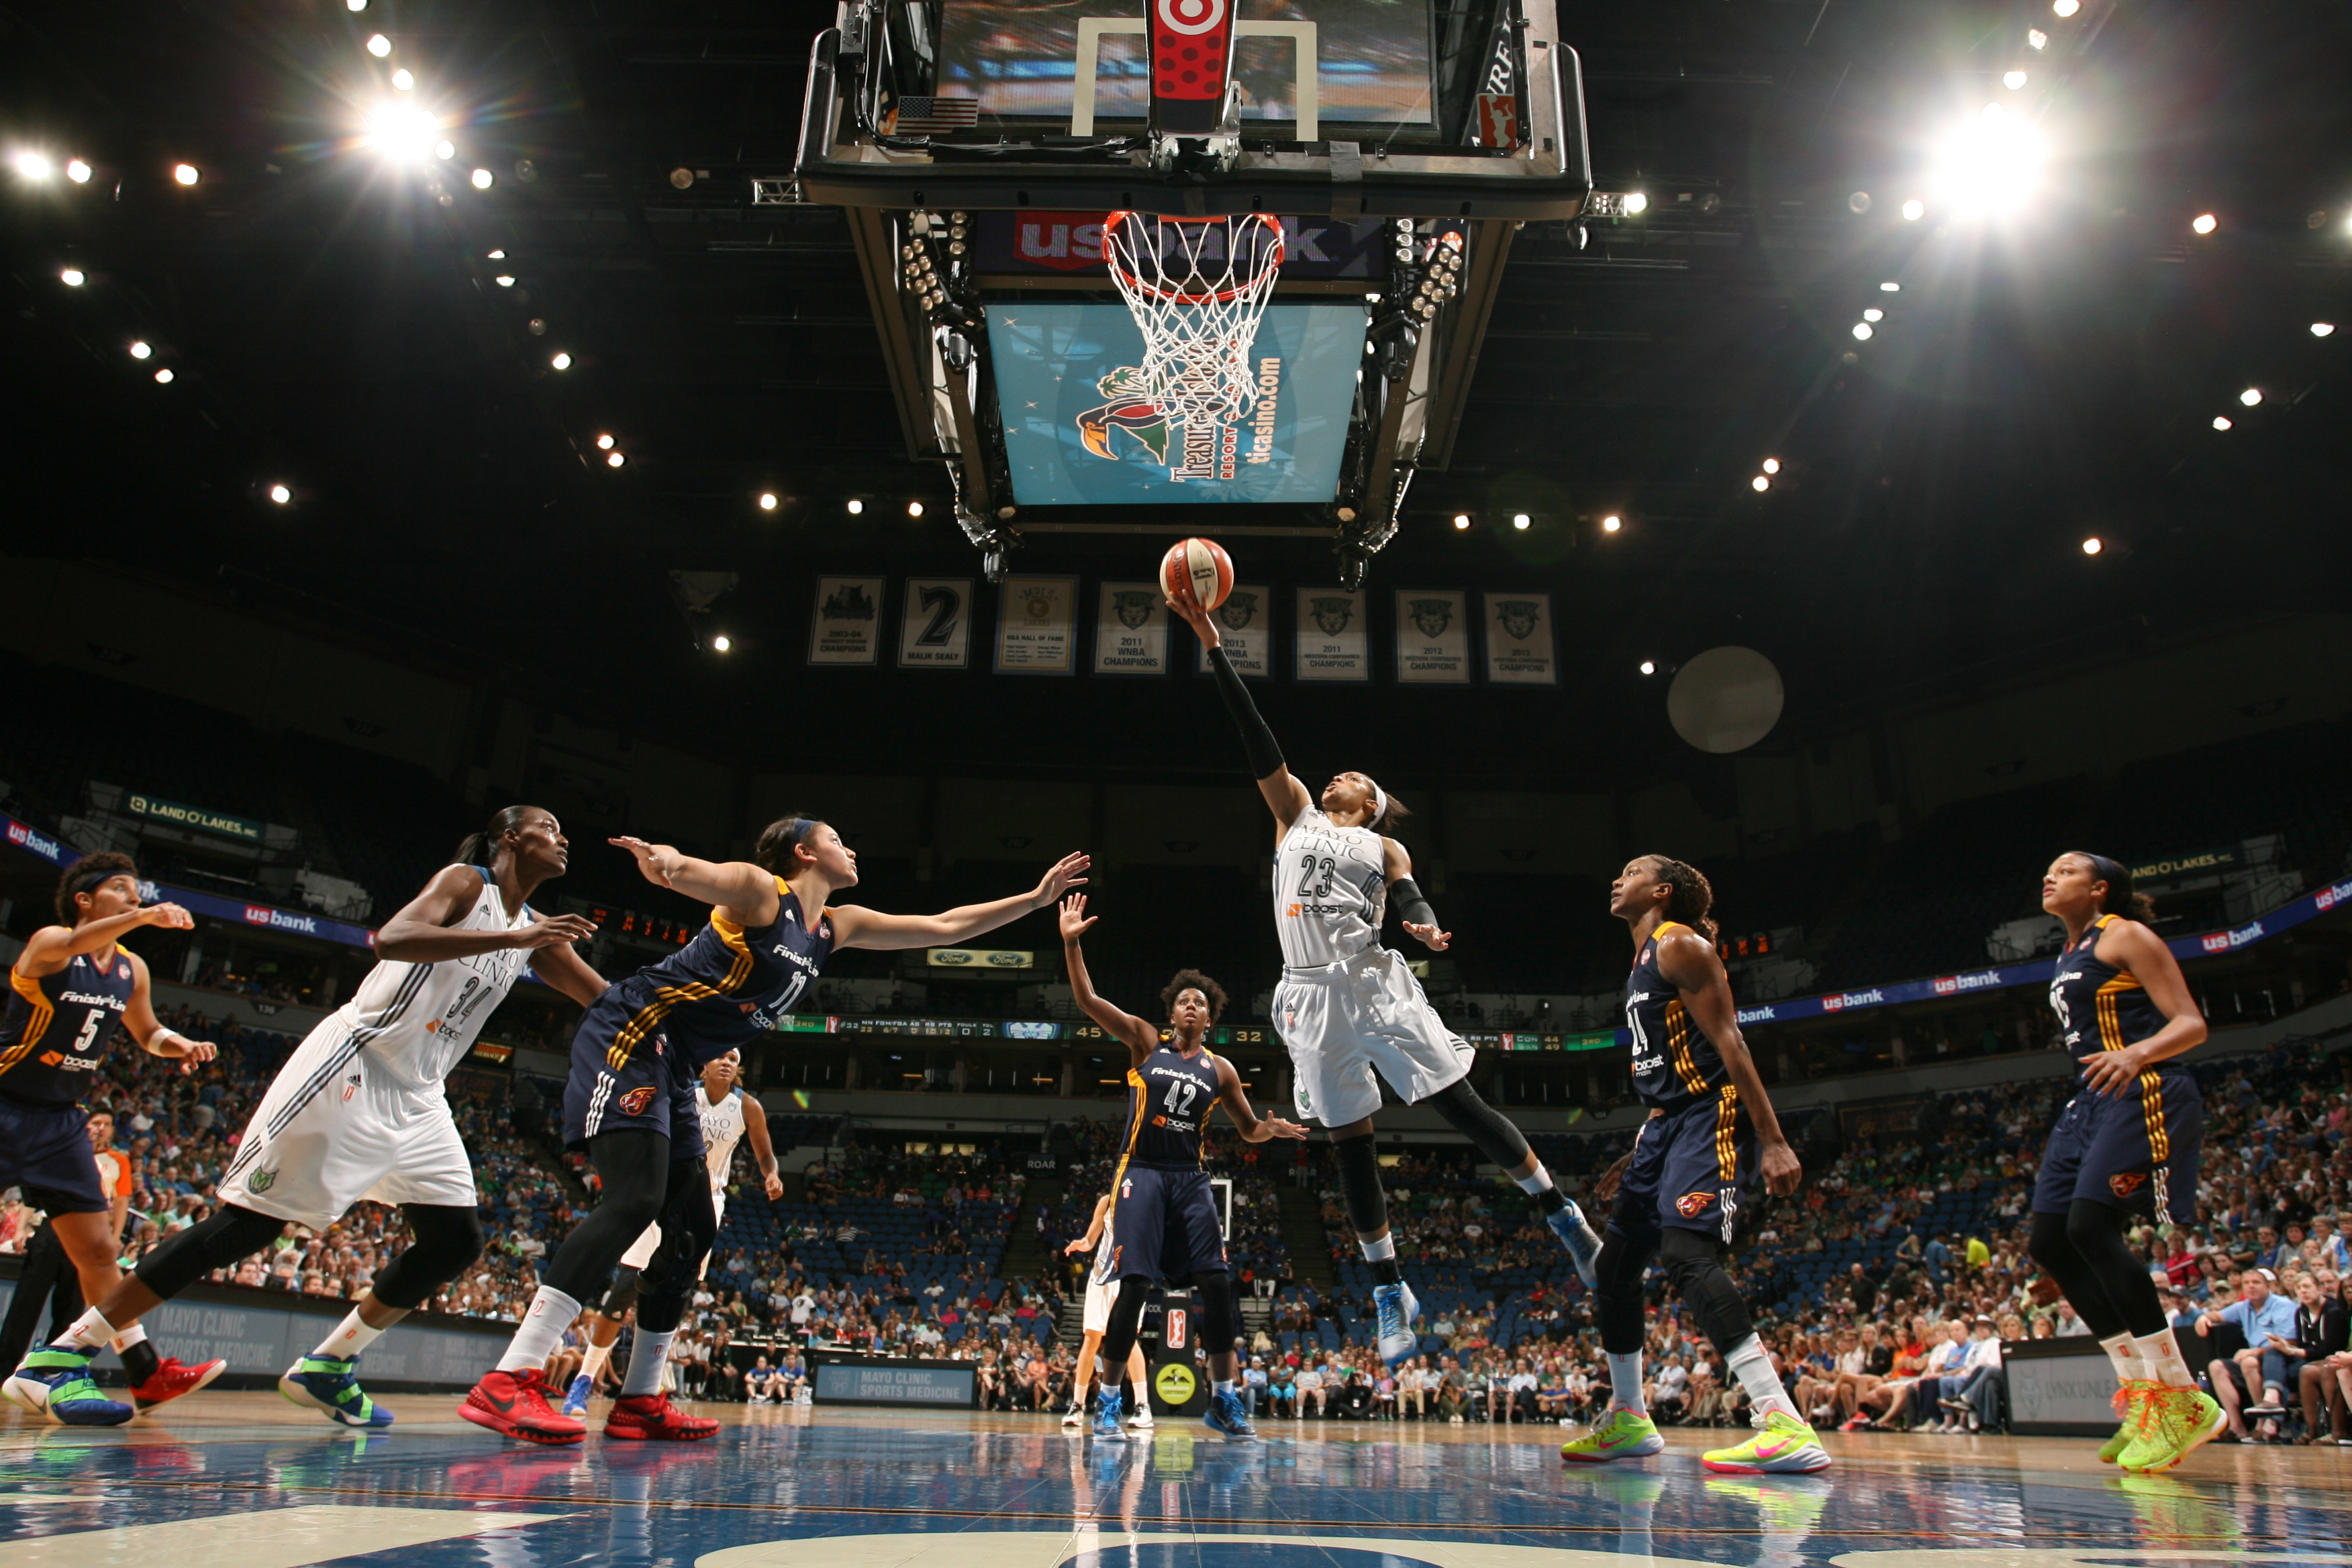 MINNEAPOLIS, MN - SEPTEMBER 4: Maya Moore #23 of the Minnesota Lynx goes for the lay up against the Indiana Fever on September 4, 2015 at Target Center in Minneapolis, Minnesota.  (Photo by David Sherman/NBAE via Getty Images